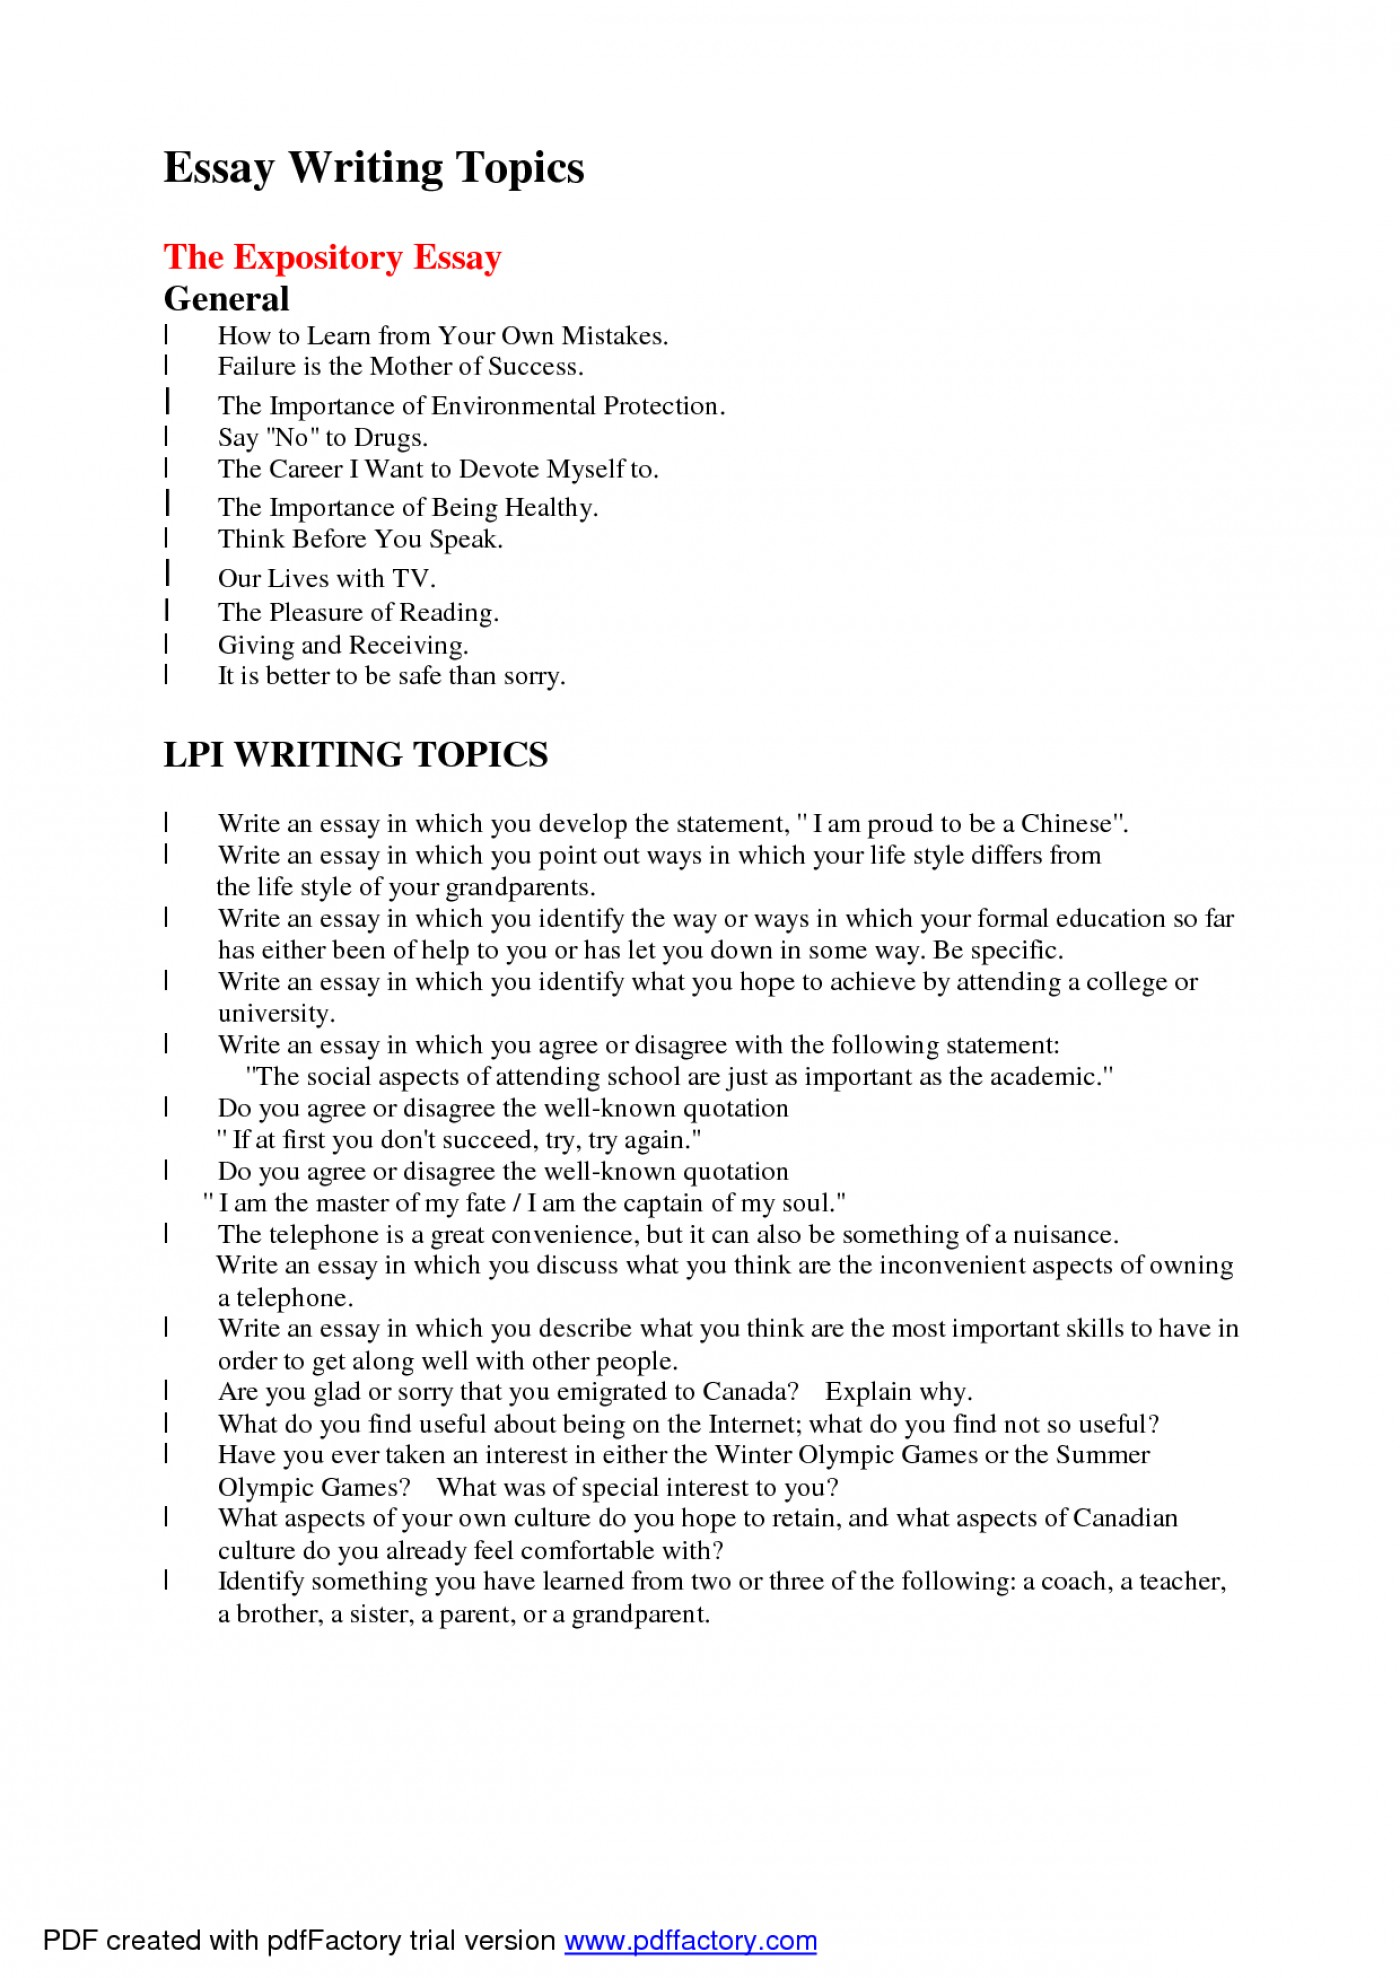 006 Essay Example Subjects Topics To Write About Arguable Good L Astounding For High School Prompts Toefl Pdf 1400